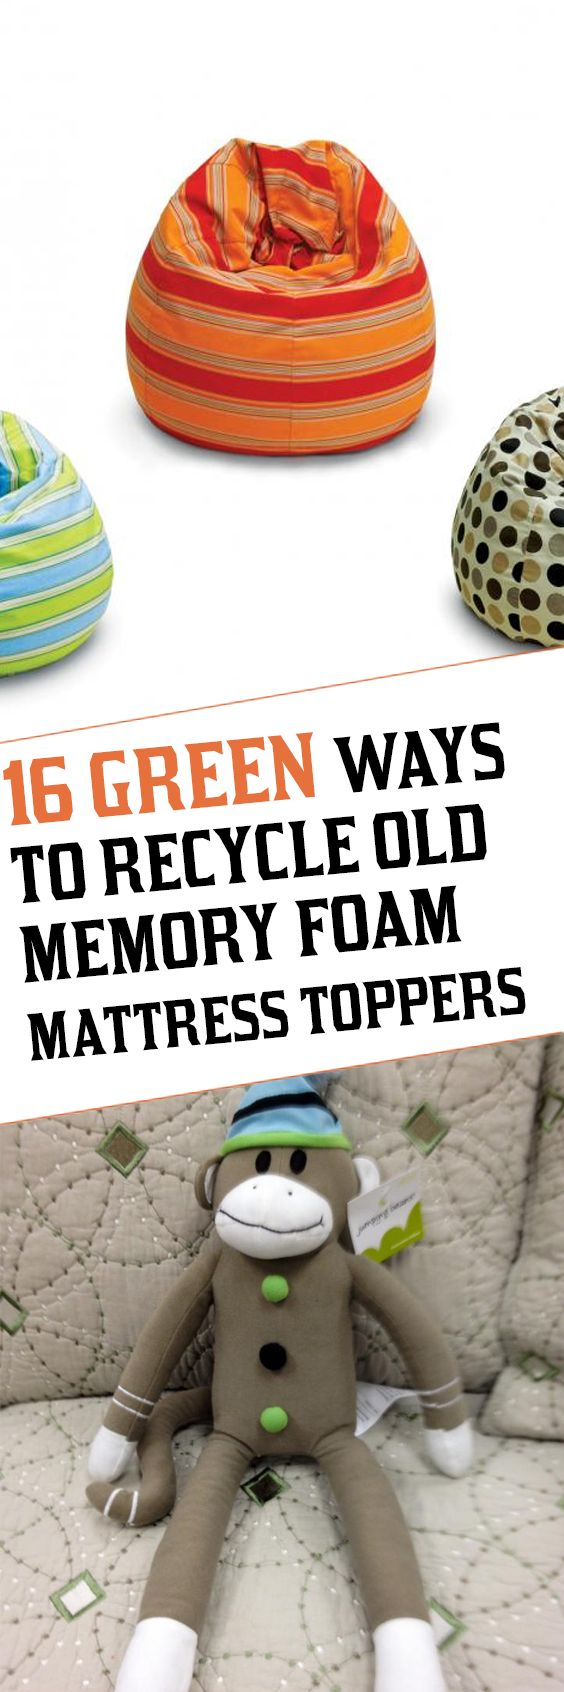 16 Green Ways to Recycle Old Memory Foam Mattress Toppers